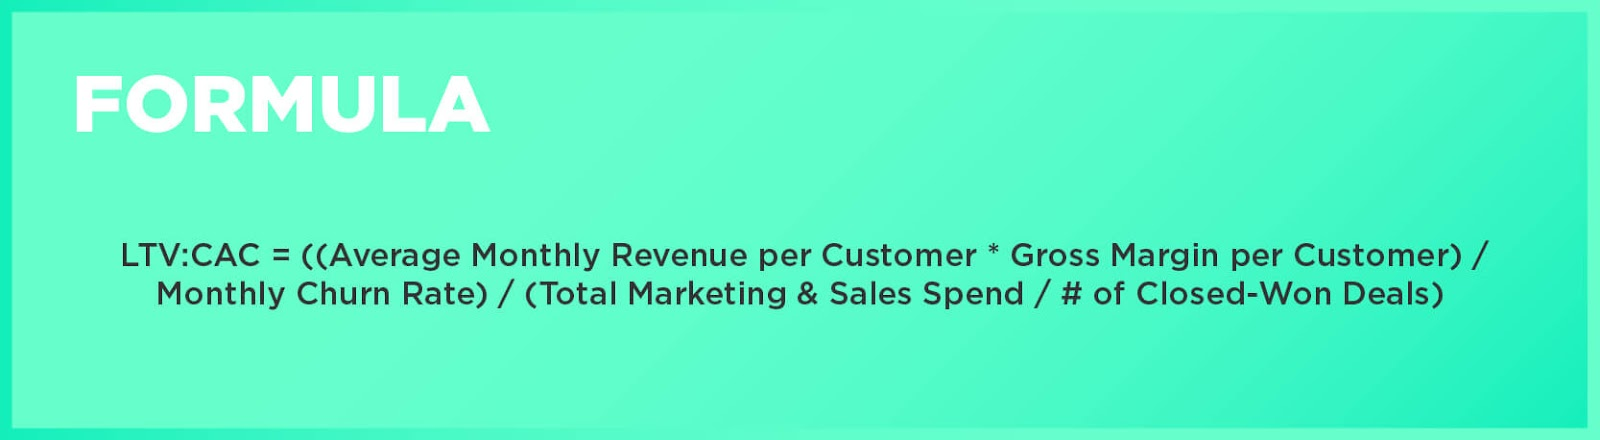 Formula: LTV:CAC = ((Average Monthly Revenue per Customer * Gross Margin per Customer) / Monthly Churn Rate) / (Total Marketing & Sales Spend / # of Closed-Won Deals)